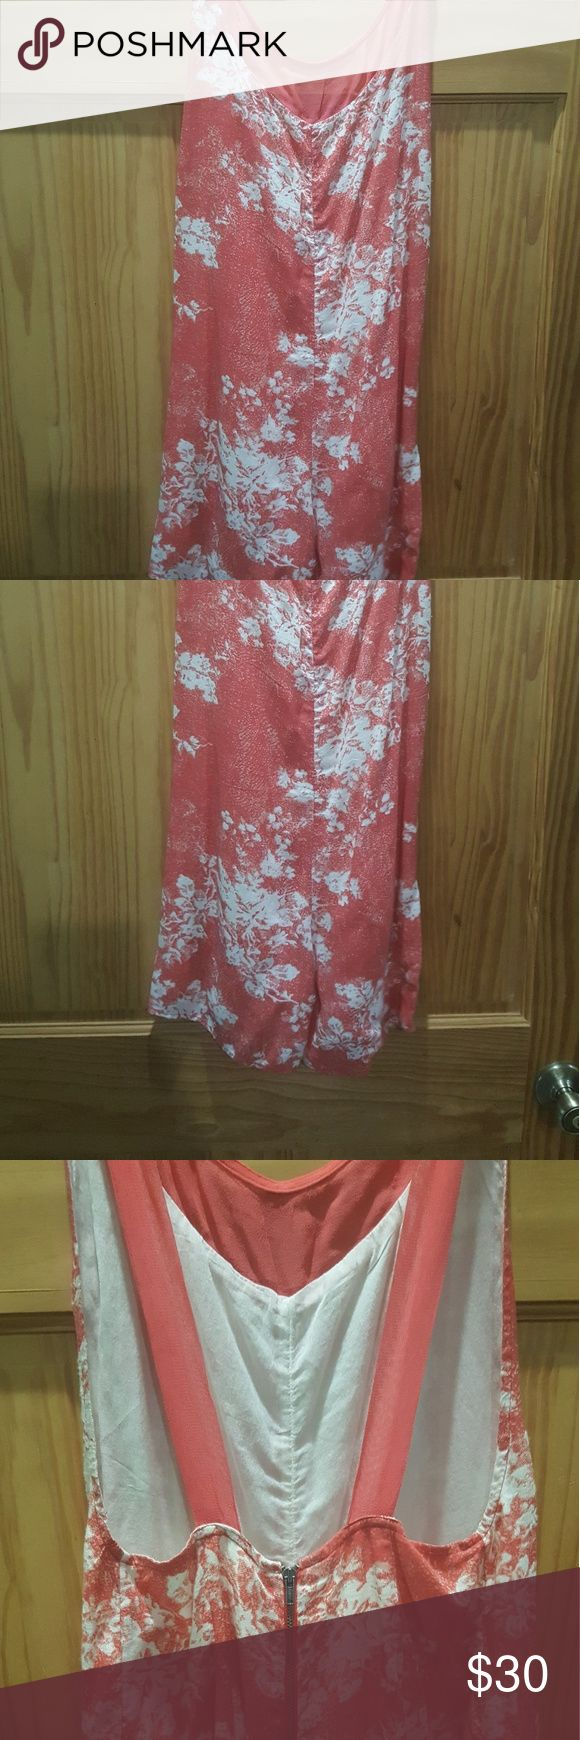 Free people corral and ivory floral print romper Free people corral and ivory floral romper sz xsmall, very cute! Small pin hole in the fabric just before the strap. Please second to last see pic. free people Other